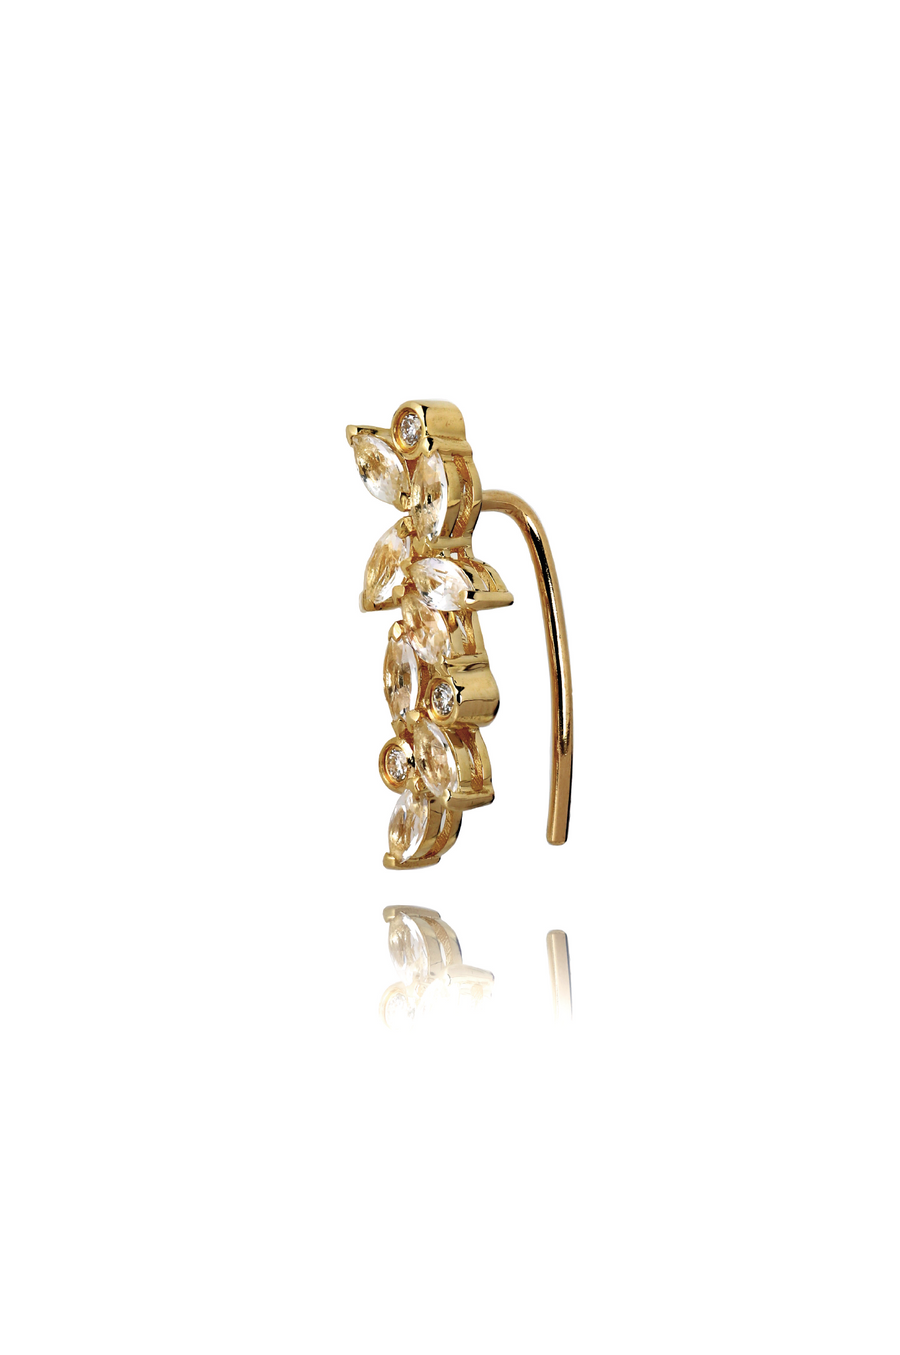 Veto Diamond and White Sapphire Ear Crawler in 14K Gold